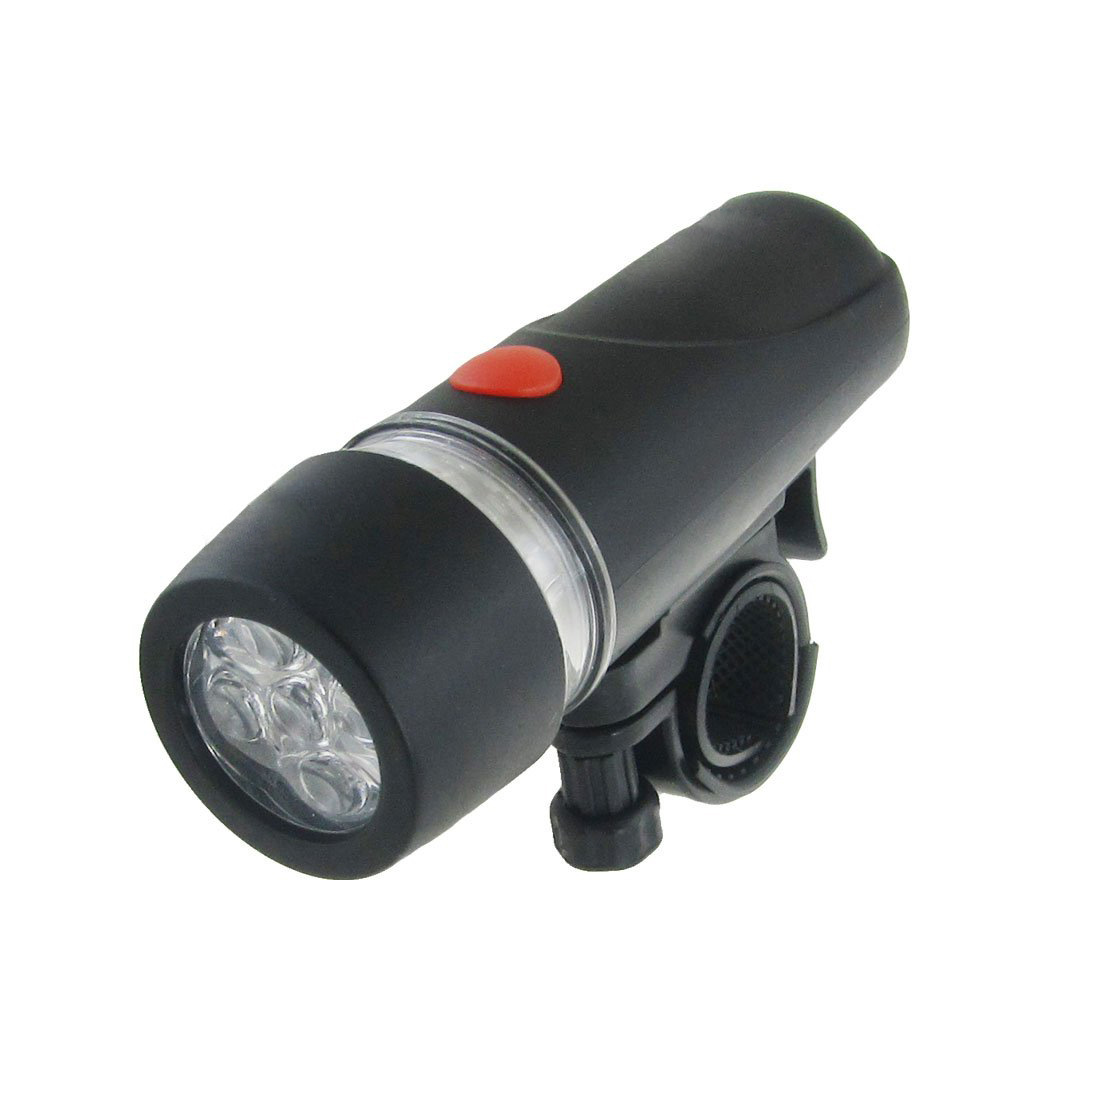 Good deal Bike Bicycle White LED Flashing Light Headlight Torch Black